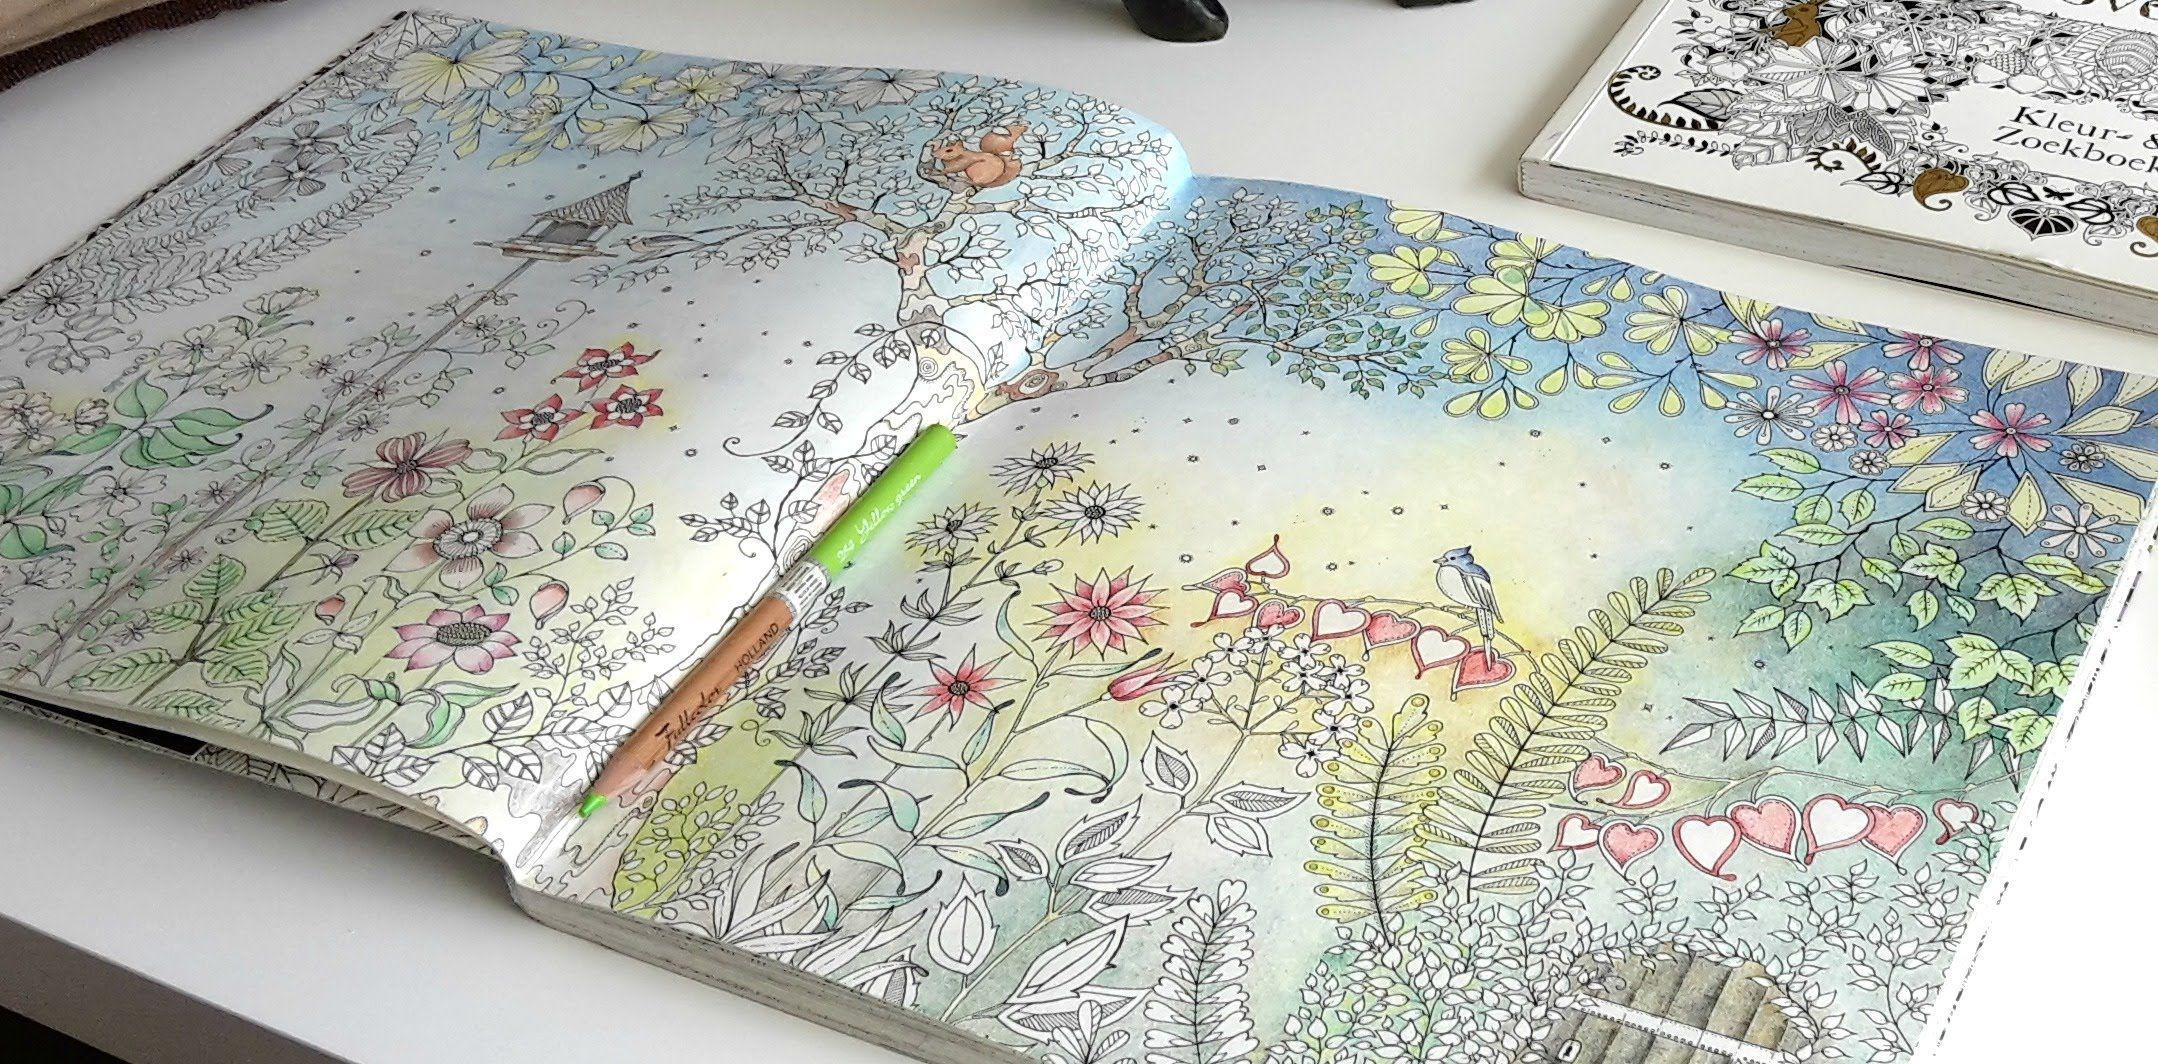 Colouring Secret Garden The Morning Garden Part 5